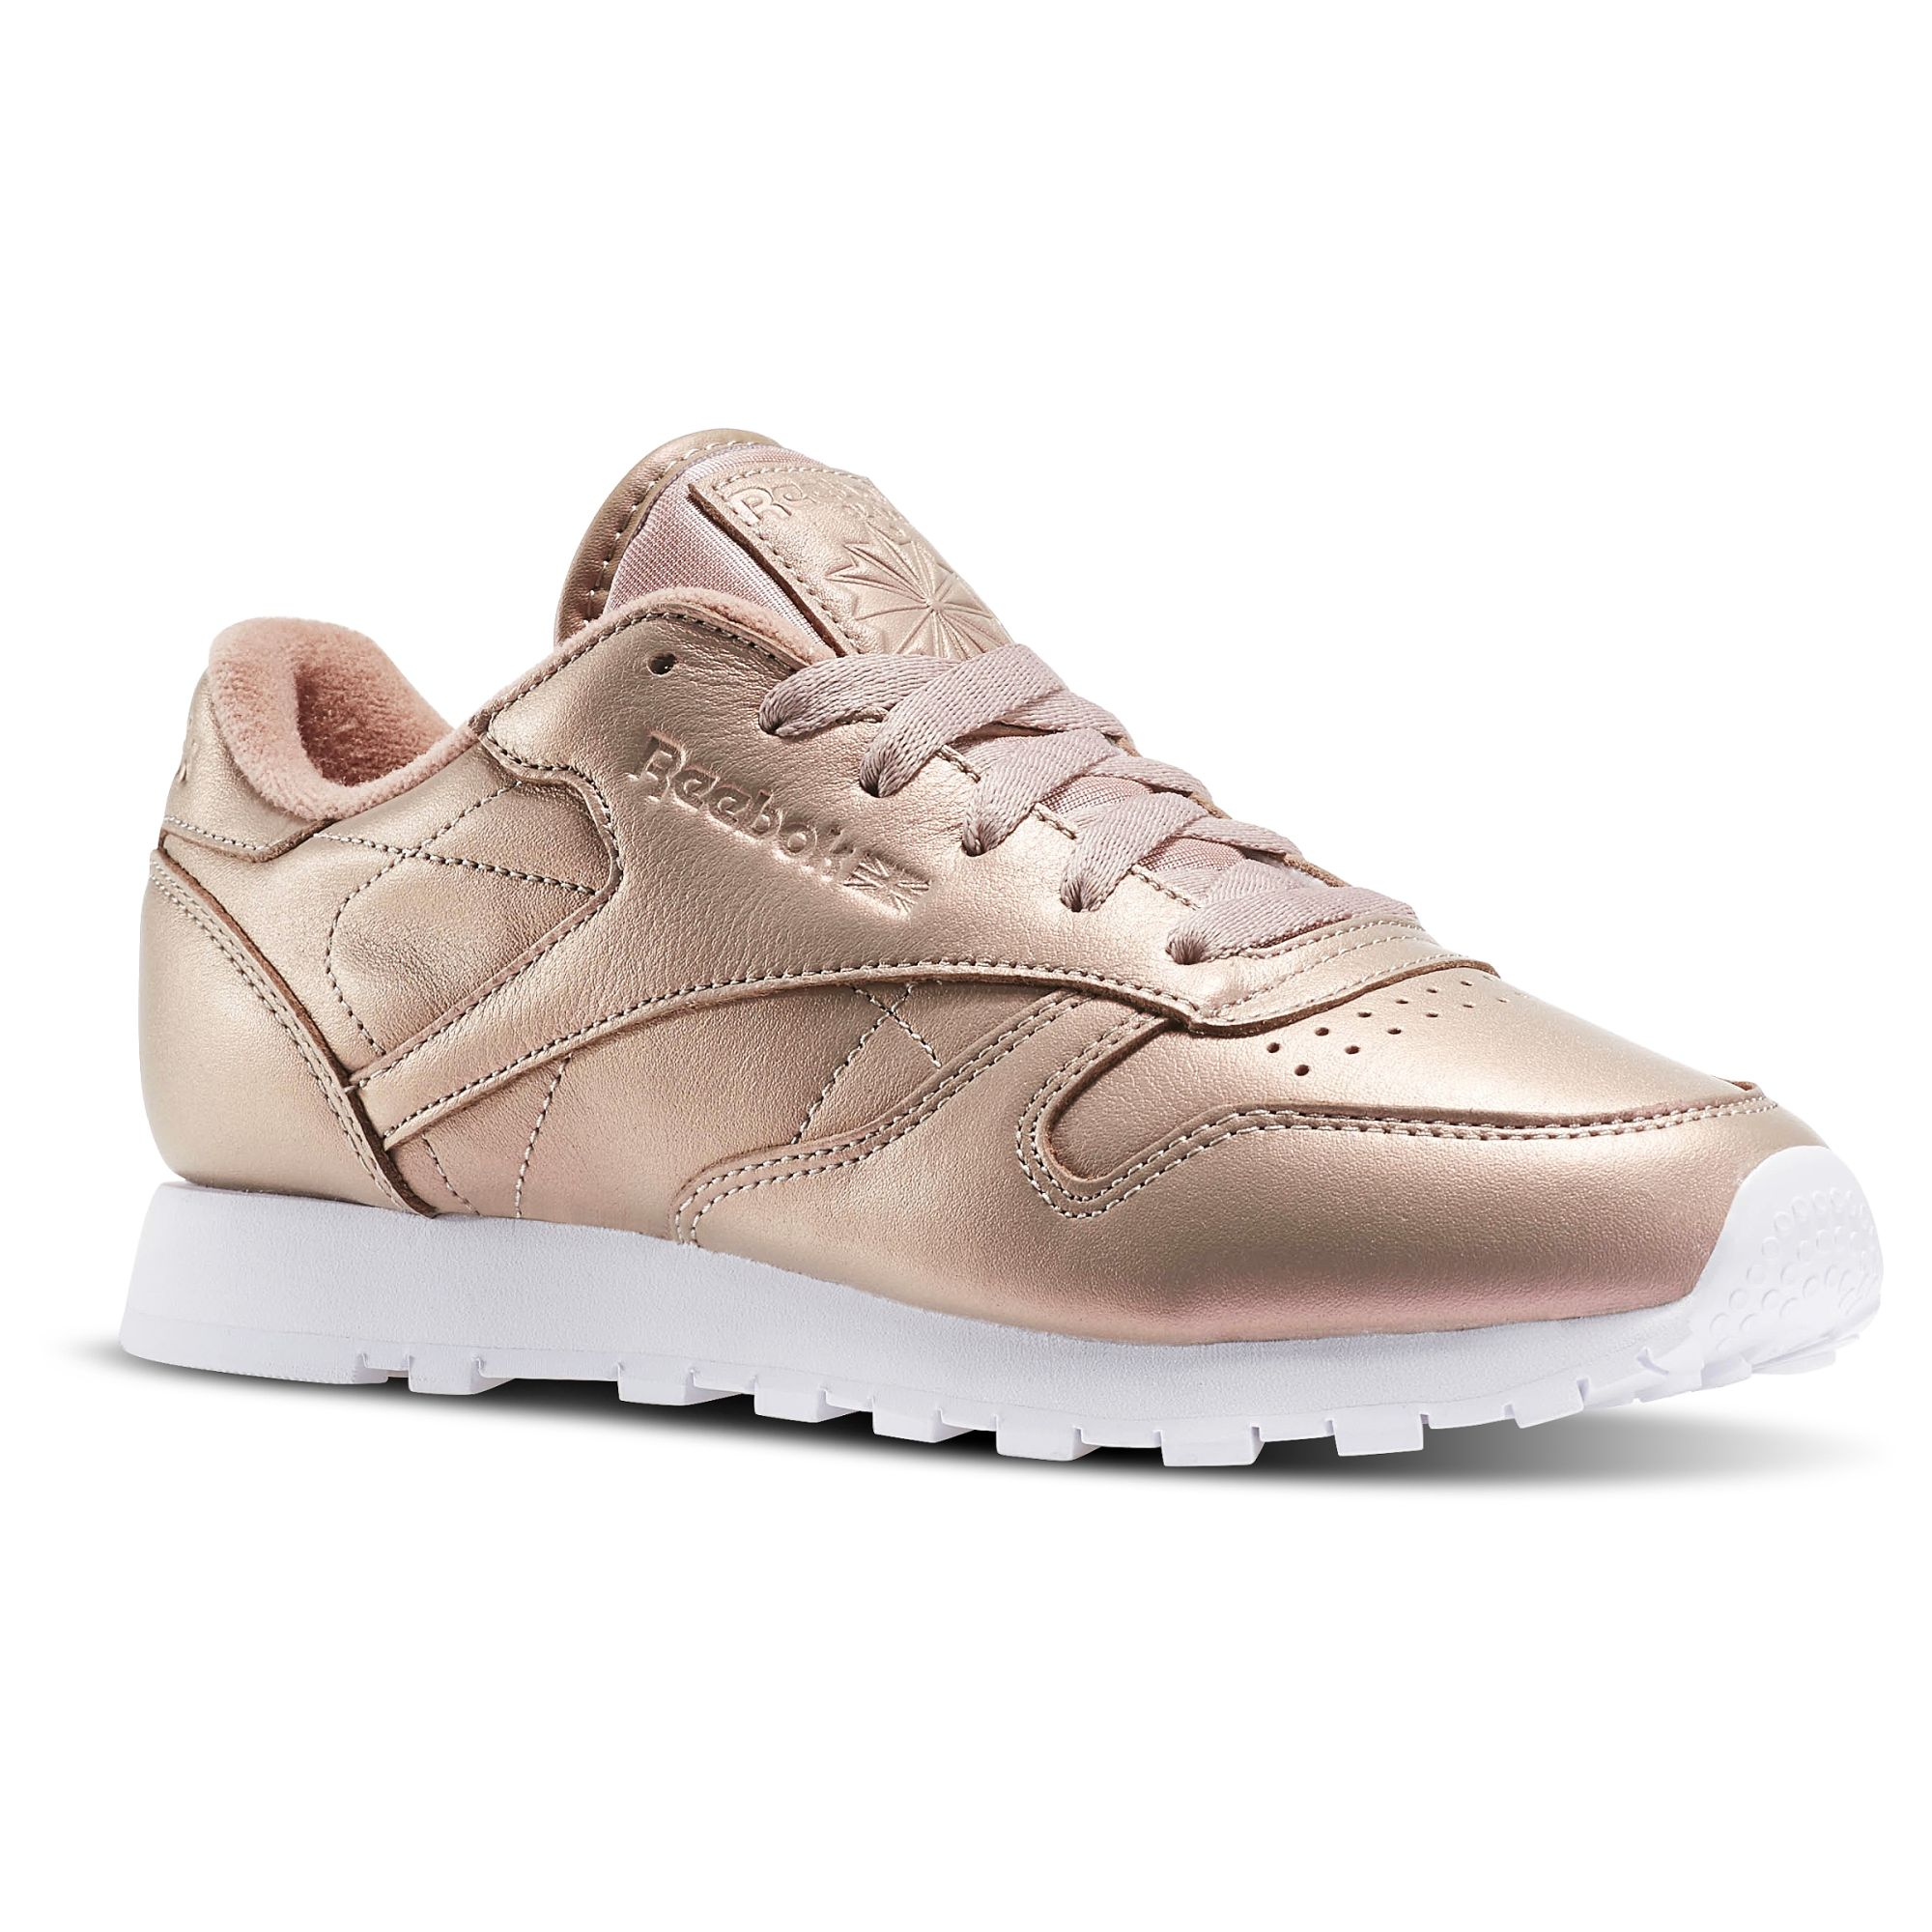 Reebok Classic Leather Pearlized Gold! Dieses und viele